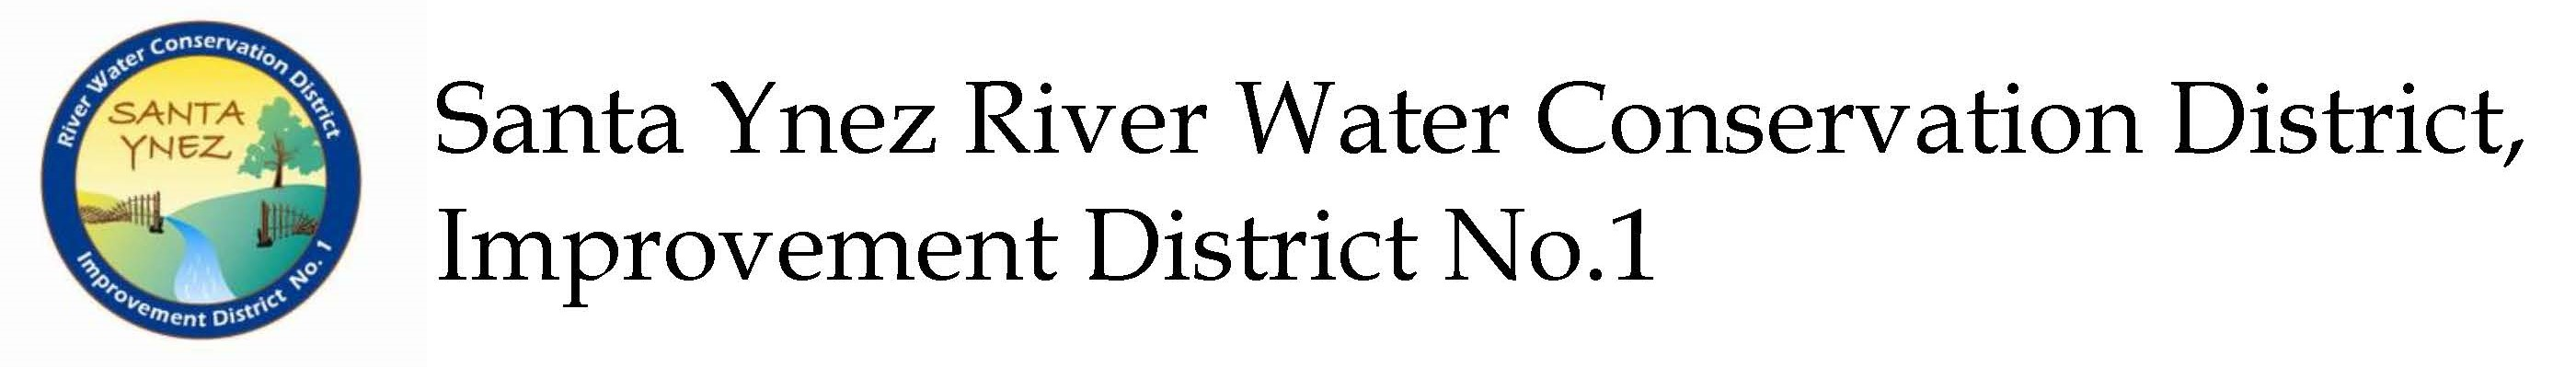 Santa Ynez River Water Conservation District, Improvement District No. 1